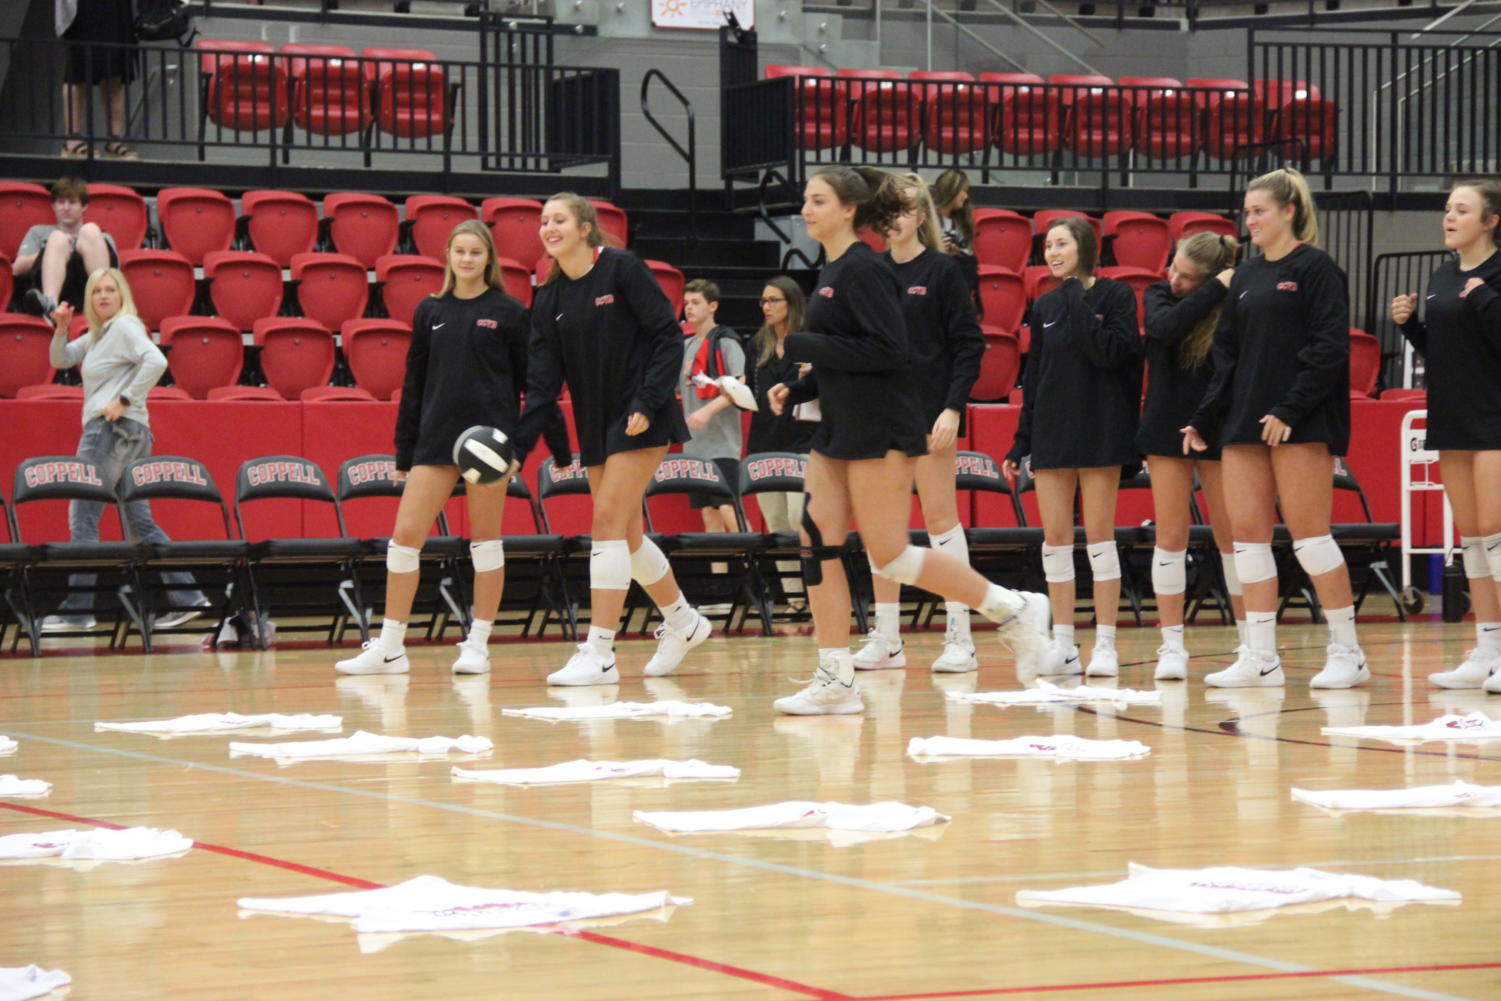 Coppell+varsity+volleyball+players+distribute+T-shirts+to+elementary+school+students+who+successfully+serve+during+Elementary+Night.+The+Coppell+volleyball+team+hosted+Elementary+Night+on+Tuesday+in+the+CHS+Arena+before+the+varsity+match+against+Arlington+Martin.+